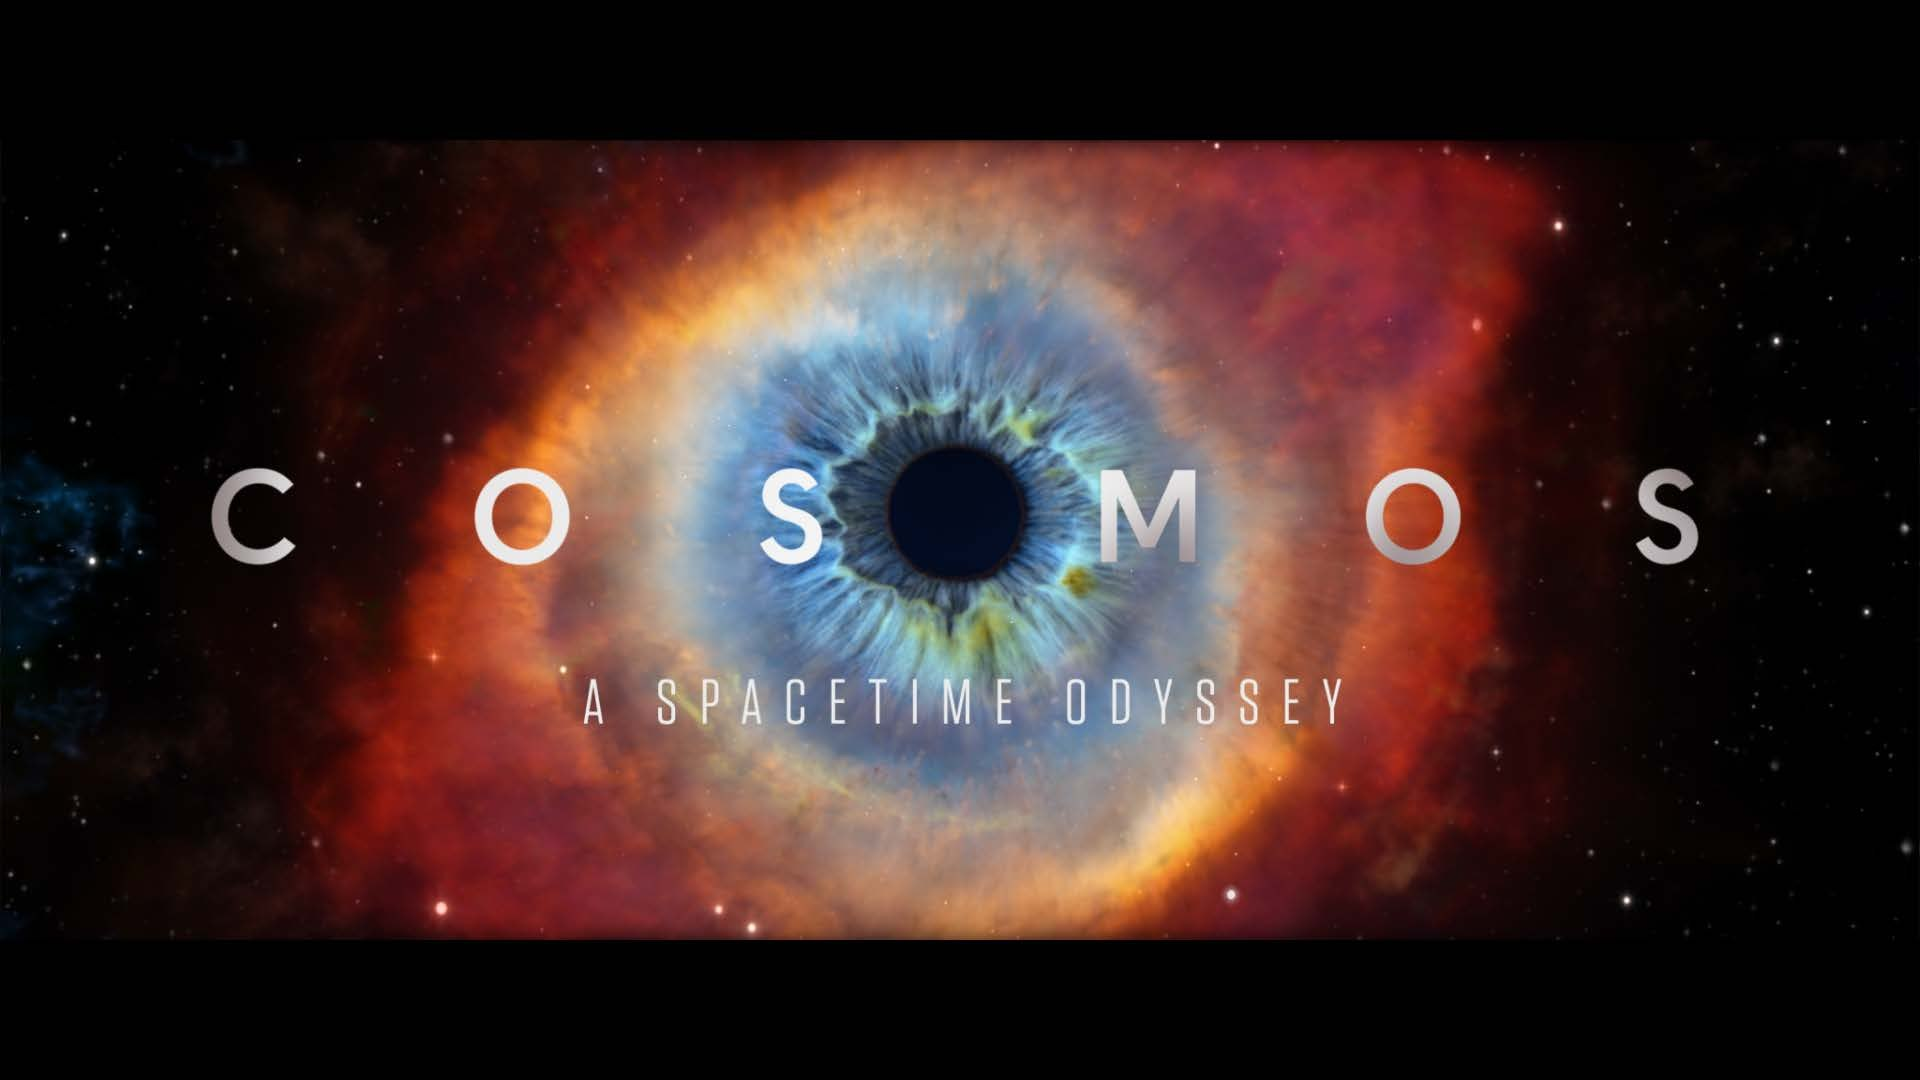 Cosmos eye in the sky logo opening